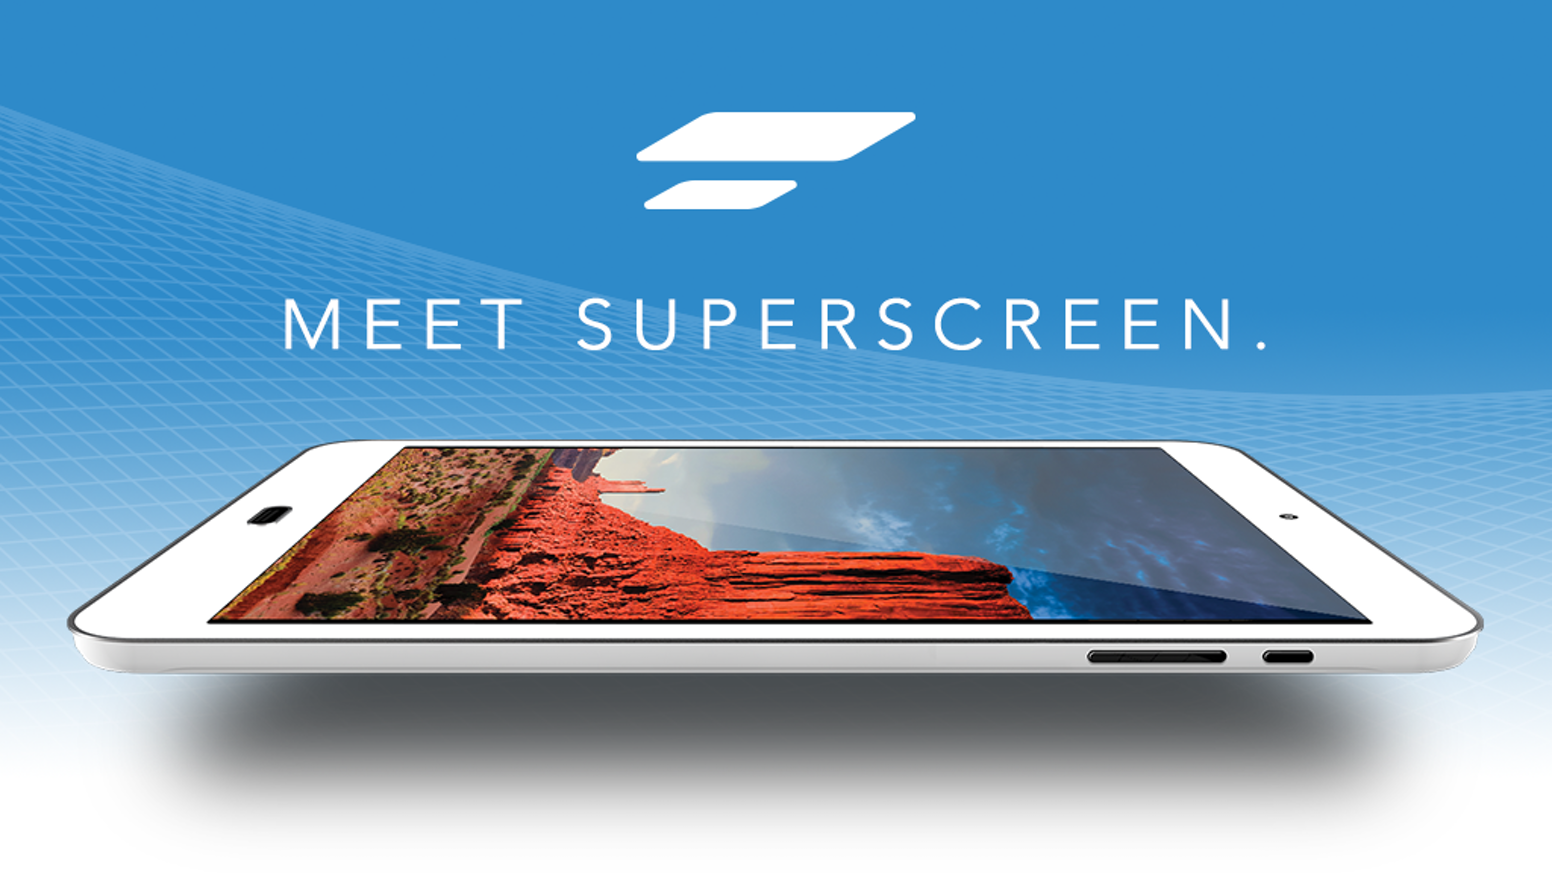 Superscreen Supercharge Your Phone With A 101 Hd Display By Nok Handphone Gives You The Benefits Of Tablet Power And Convenience